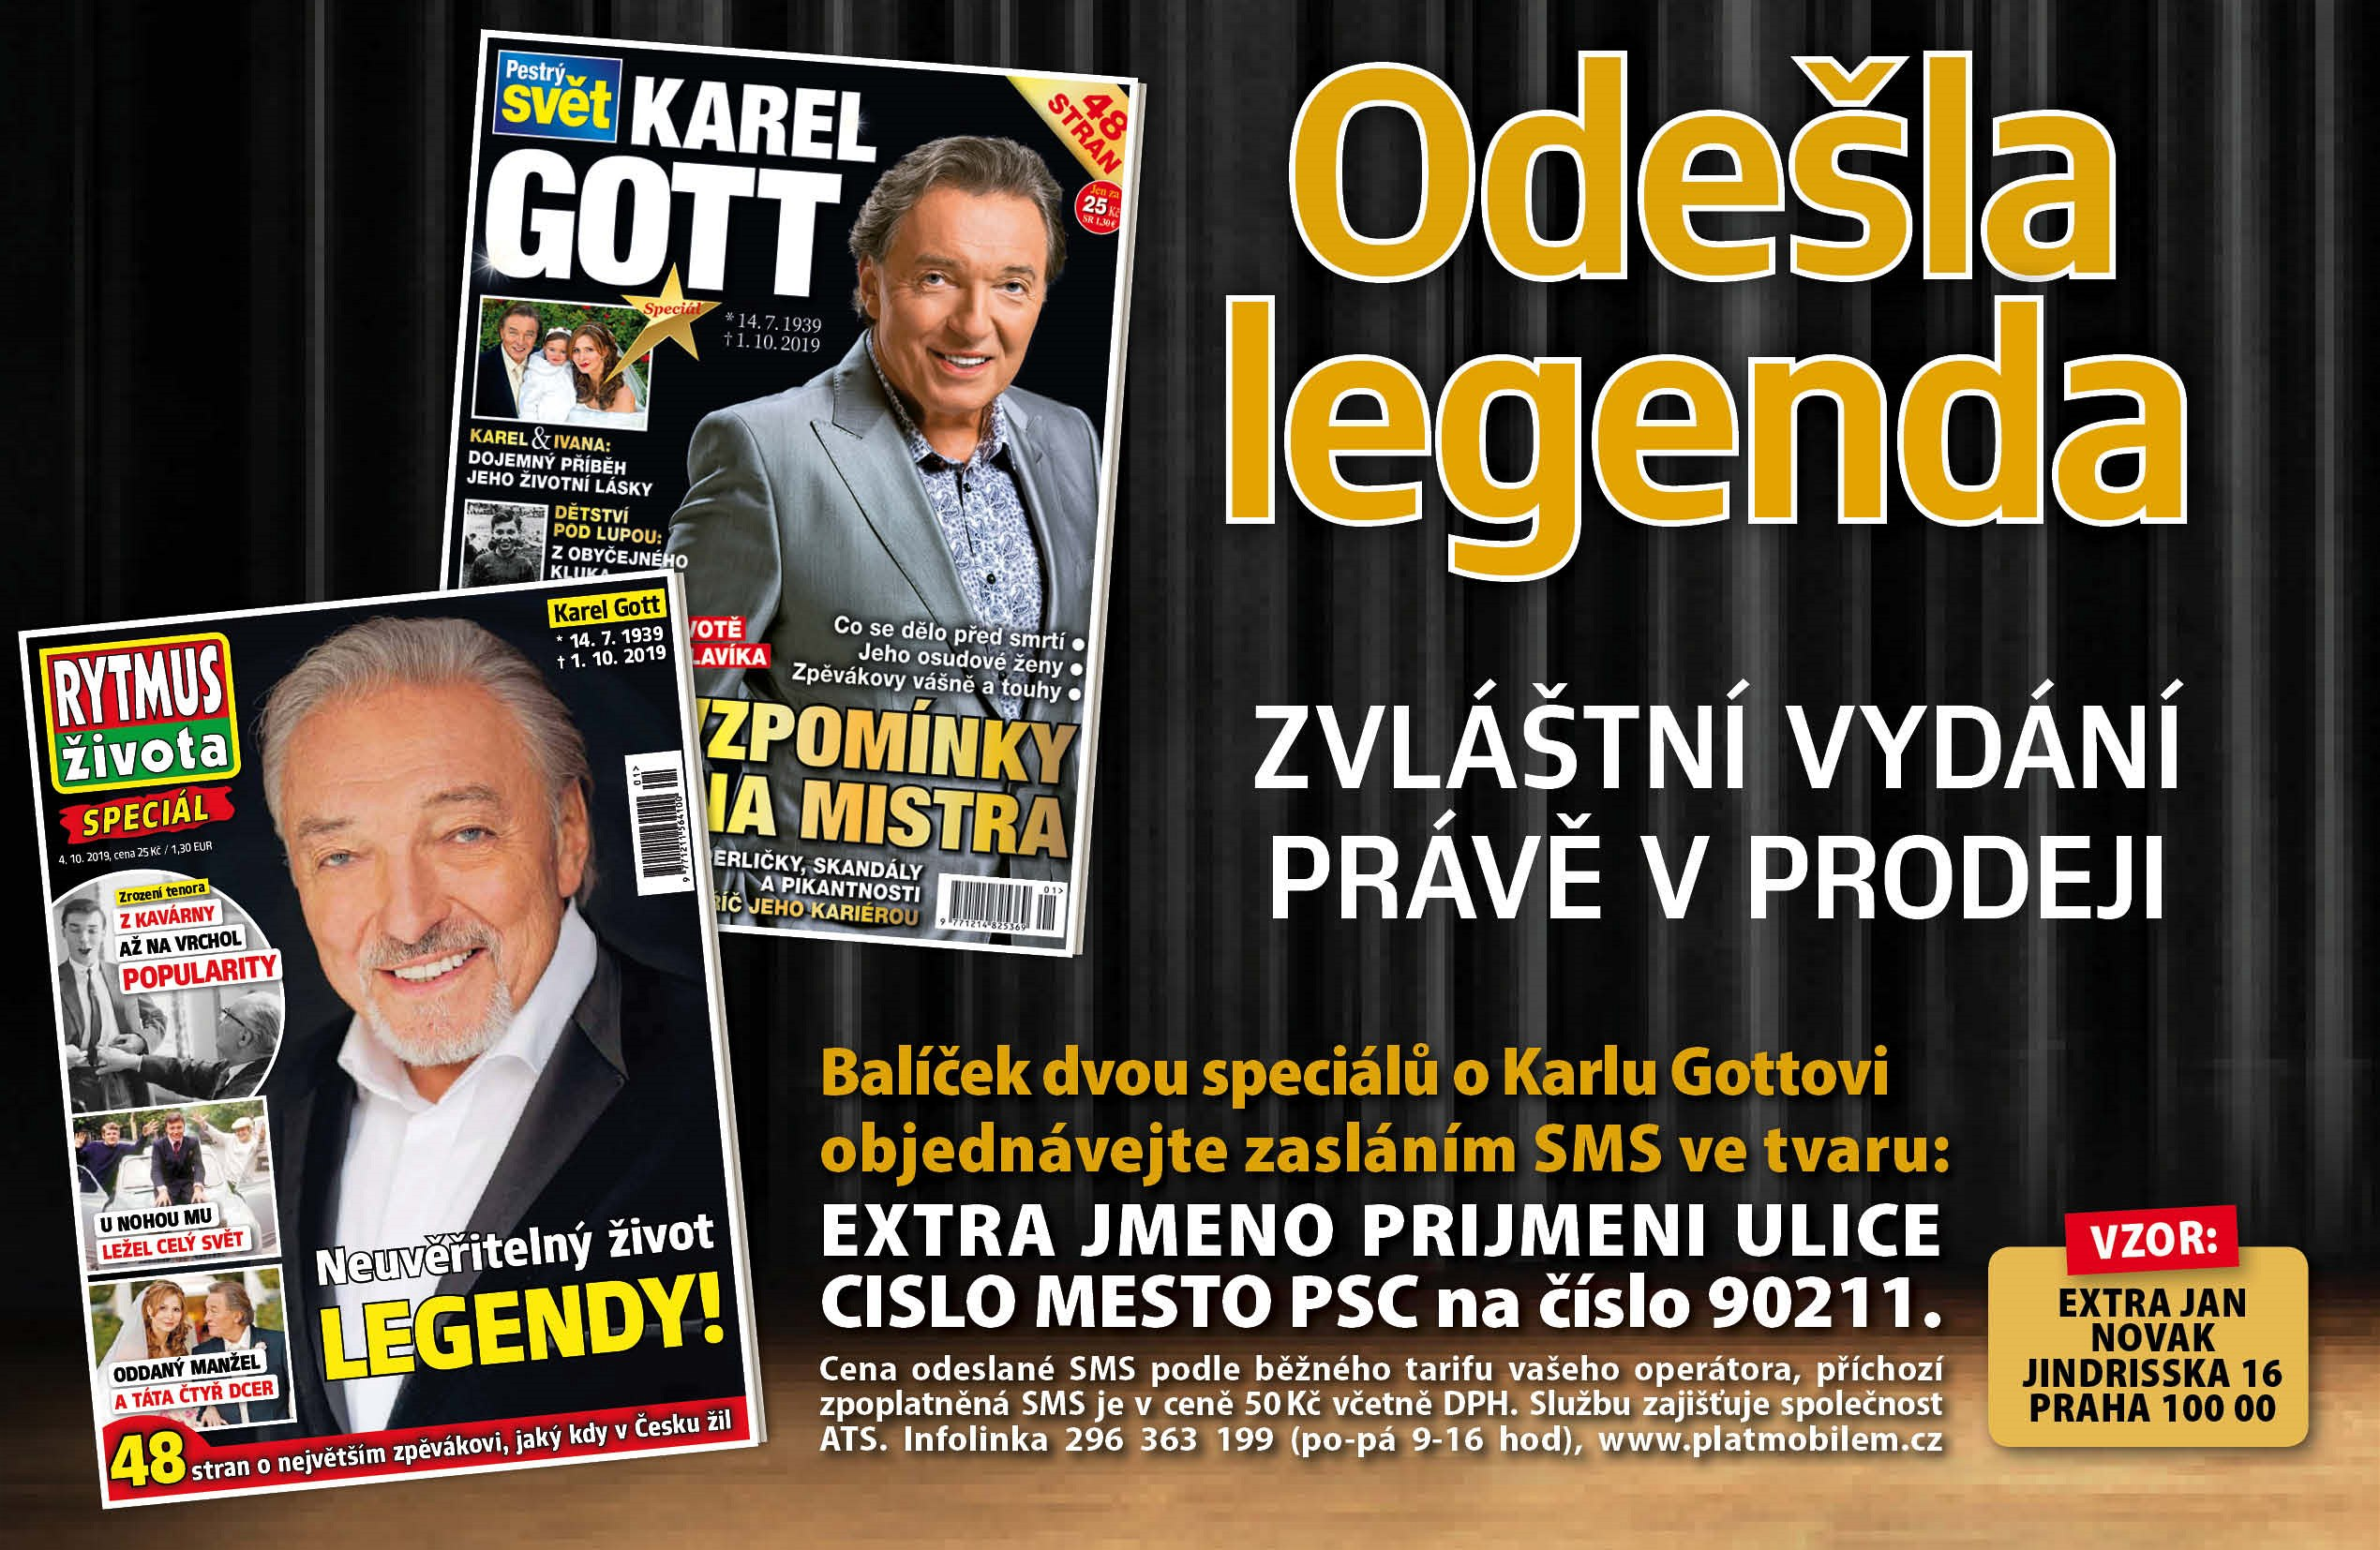 Karel Gott in specific